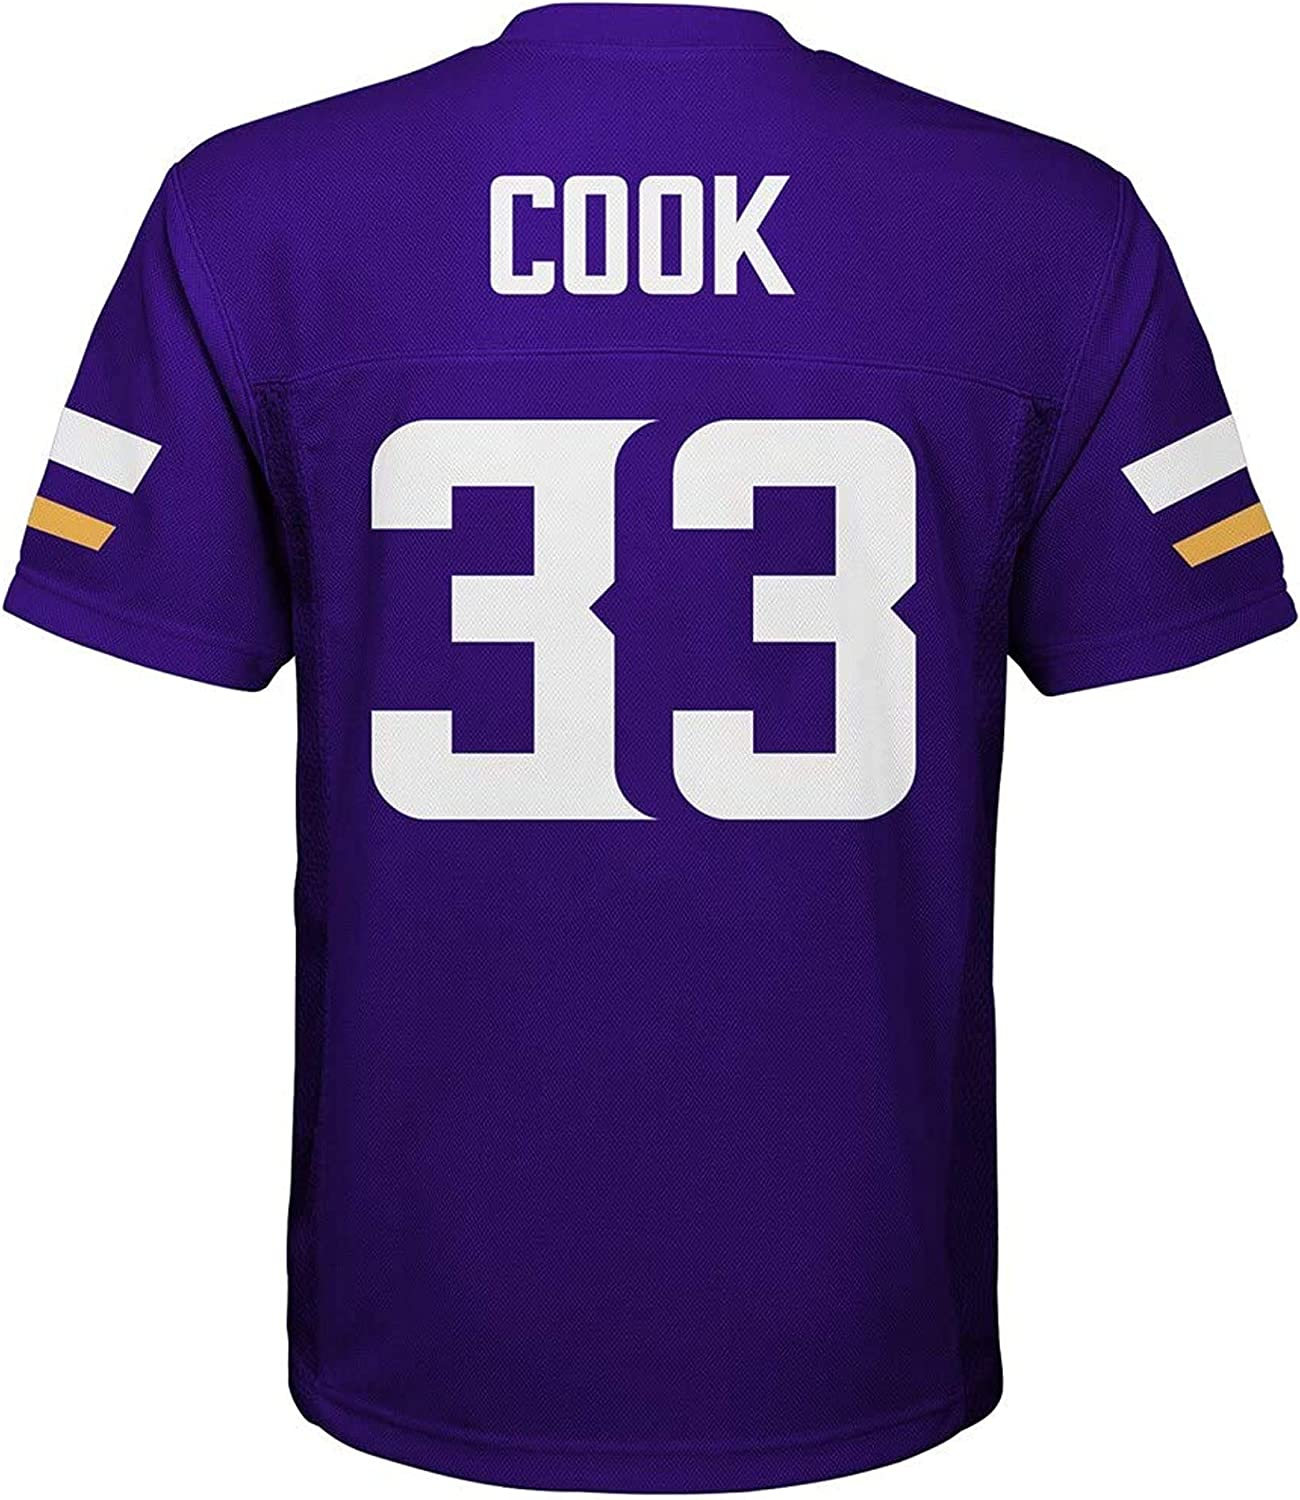 Dalvin Cook Minnesota Vikings #33 Kids 4-7 Purple Home Mid-Tier Player Jersey